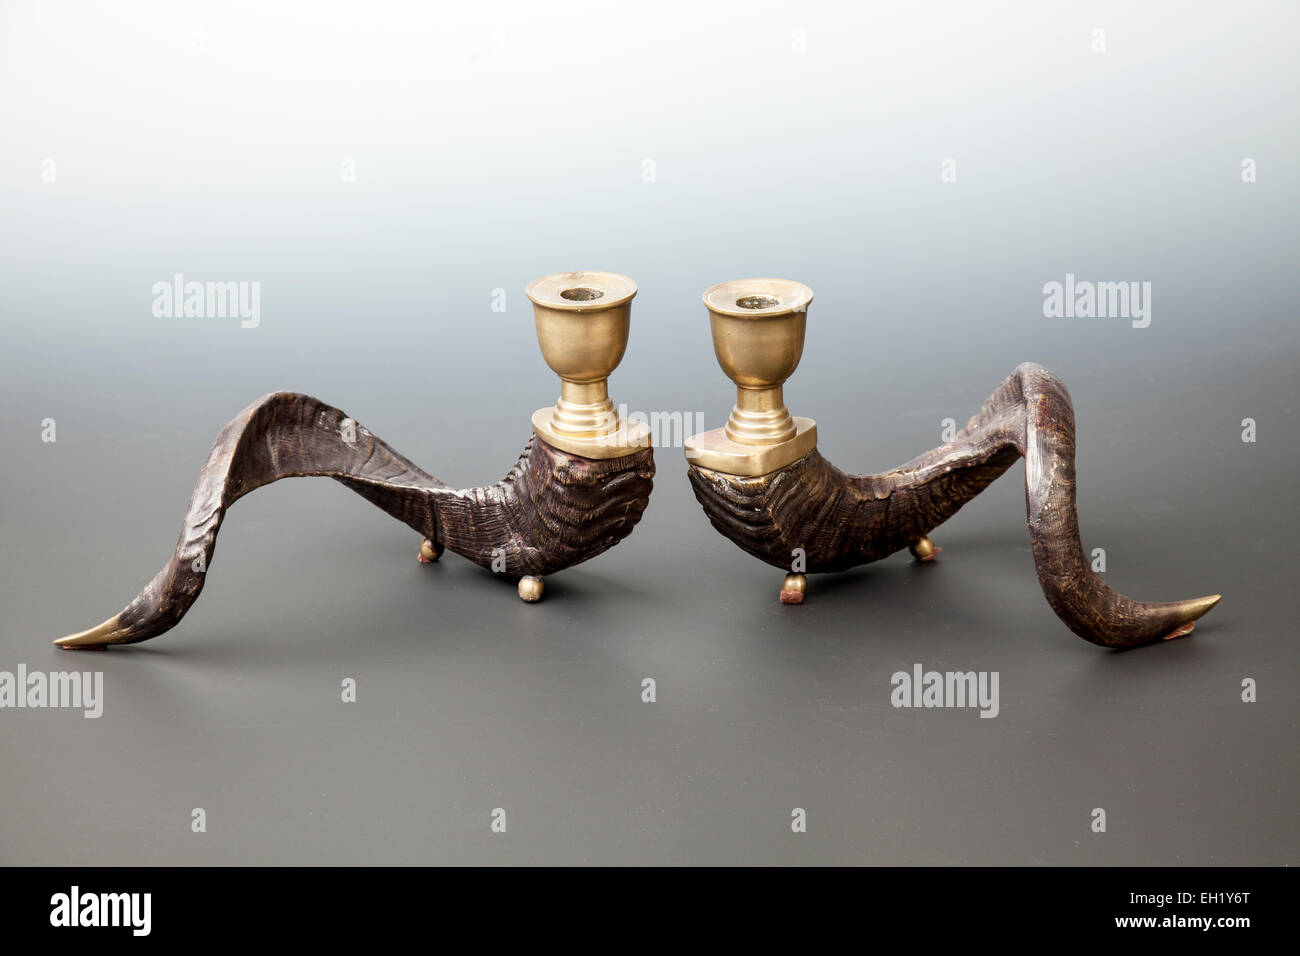 Pair of vintage brass ram horn candle holders. - Stock Image